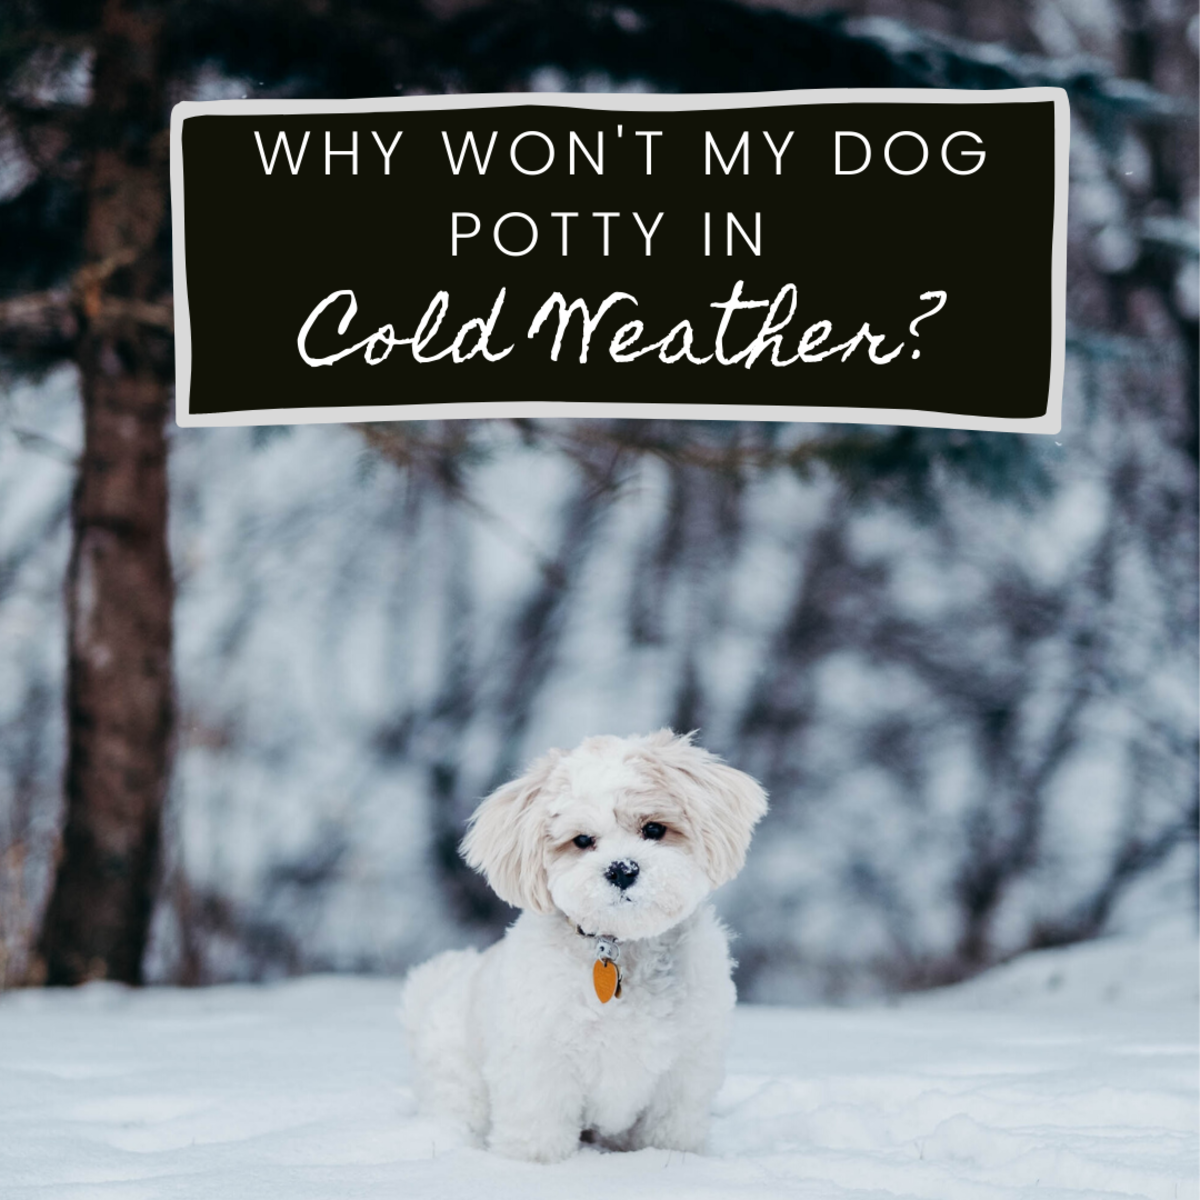 Help! My Dog Won't Potty When It's Cold Outside